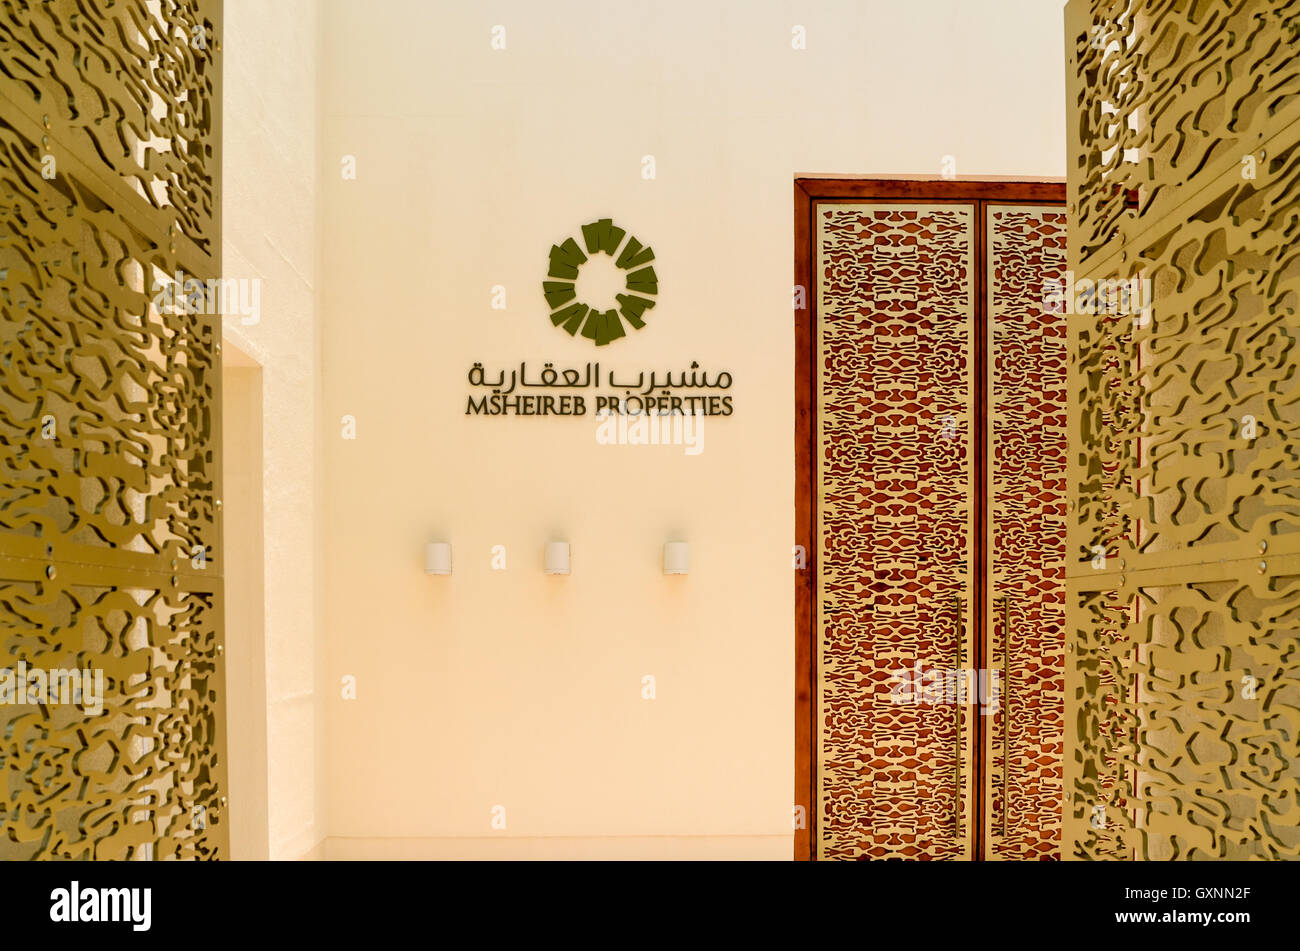 Entrance of the Msheireb Enrichment Centre in Doha, Qatar - Stock Image